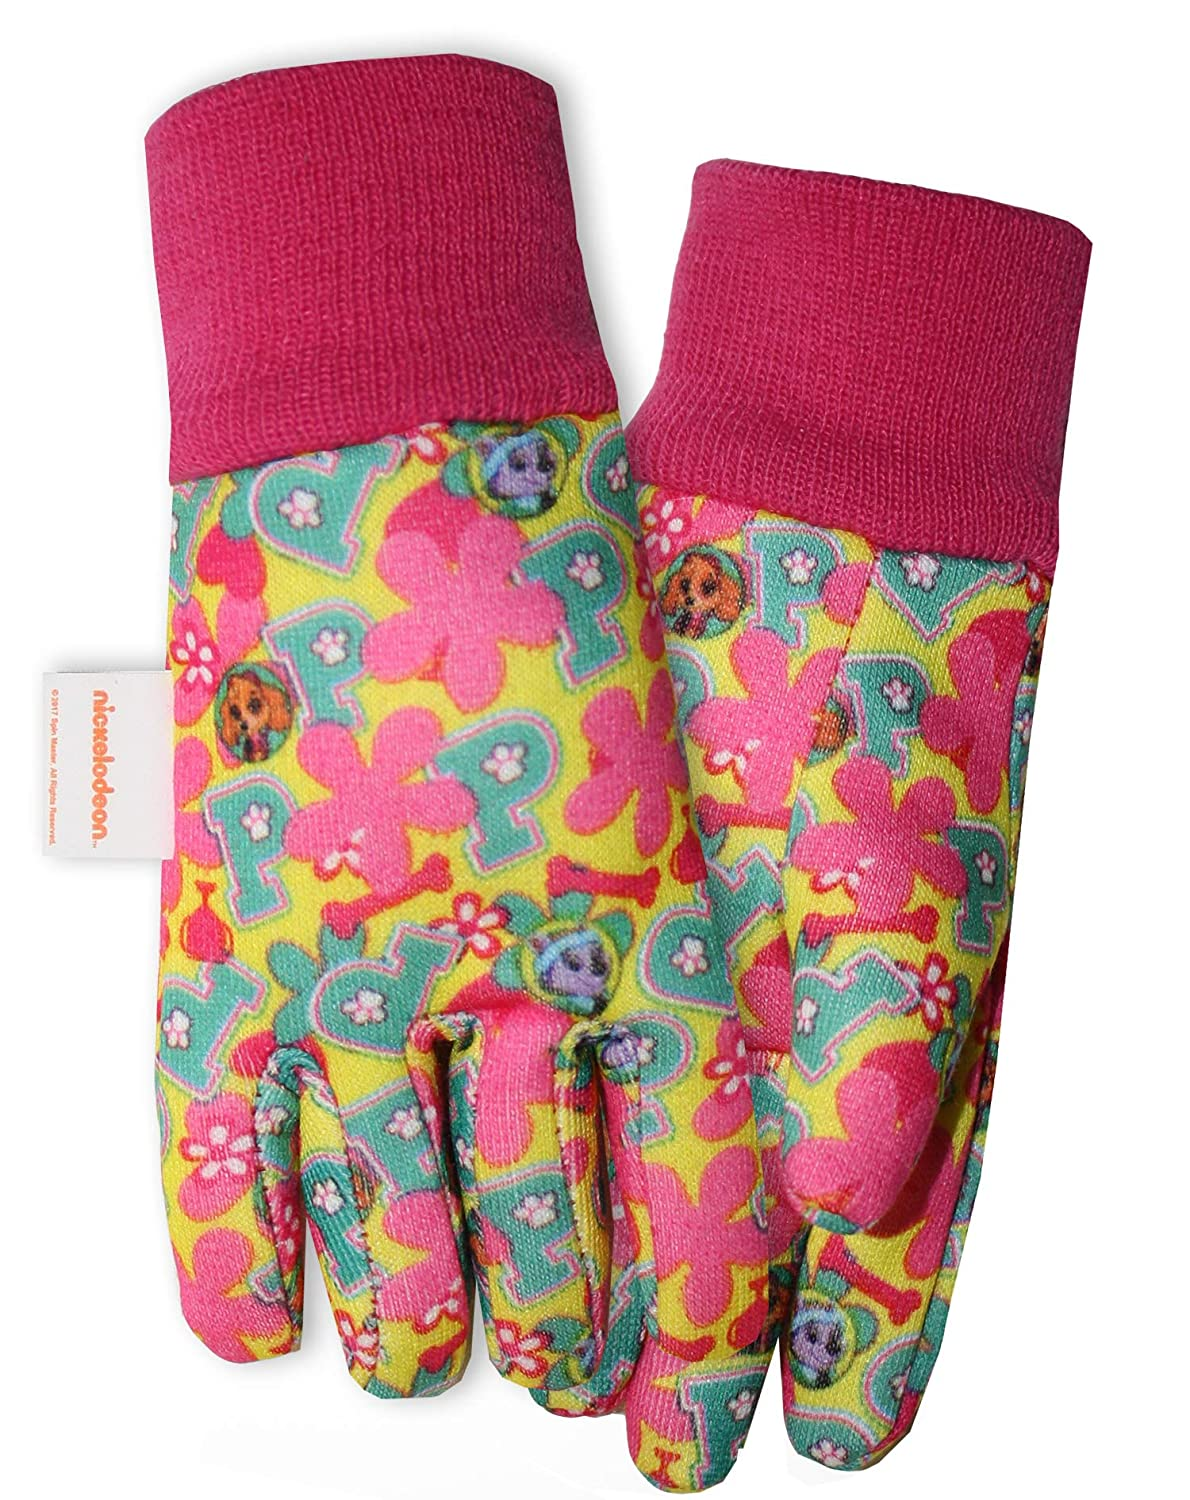 Midwest Gloves & Gear PWG102T Paw Patrol Girls Jersey Garden Toddler Gloves, Multicolor